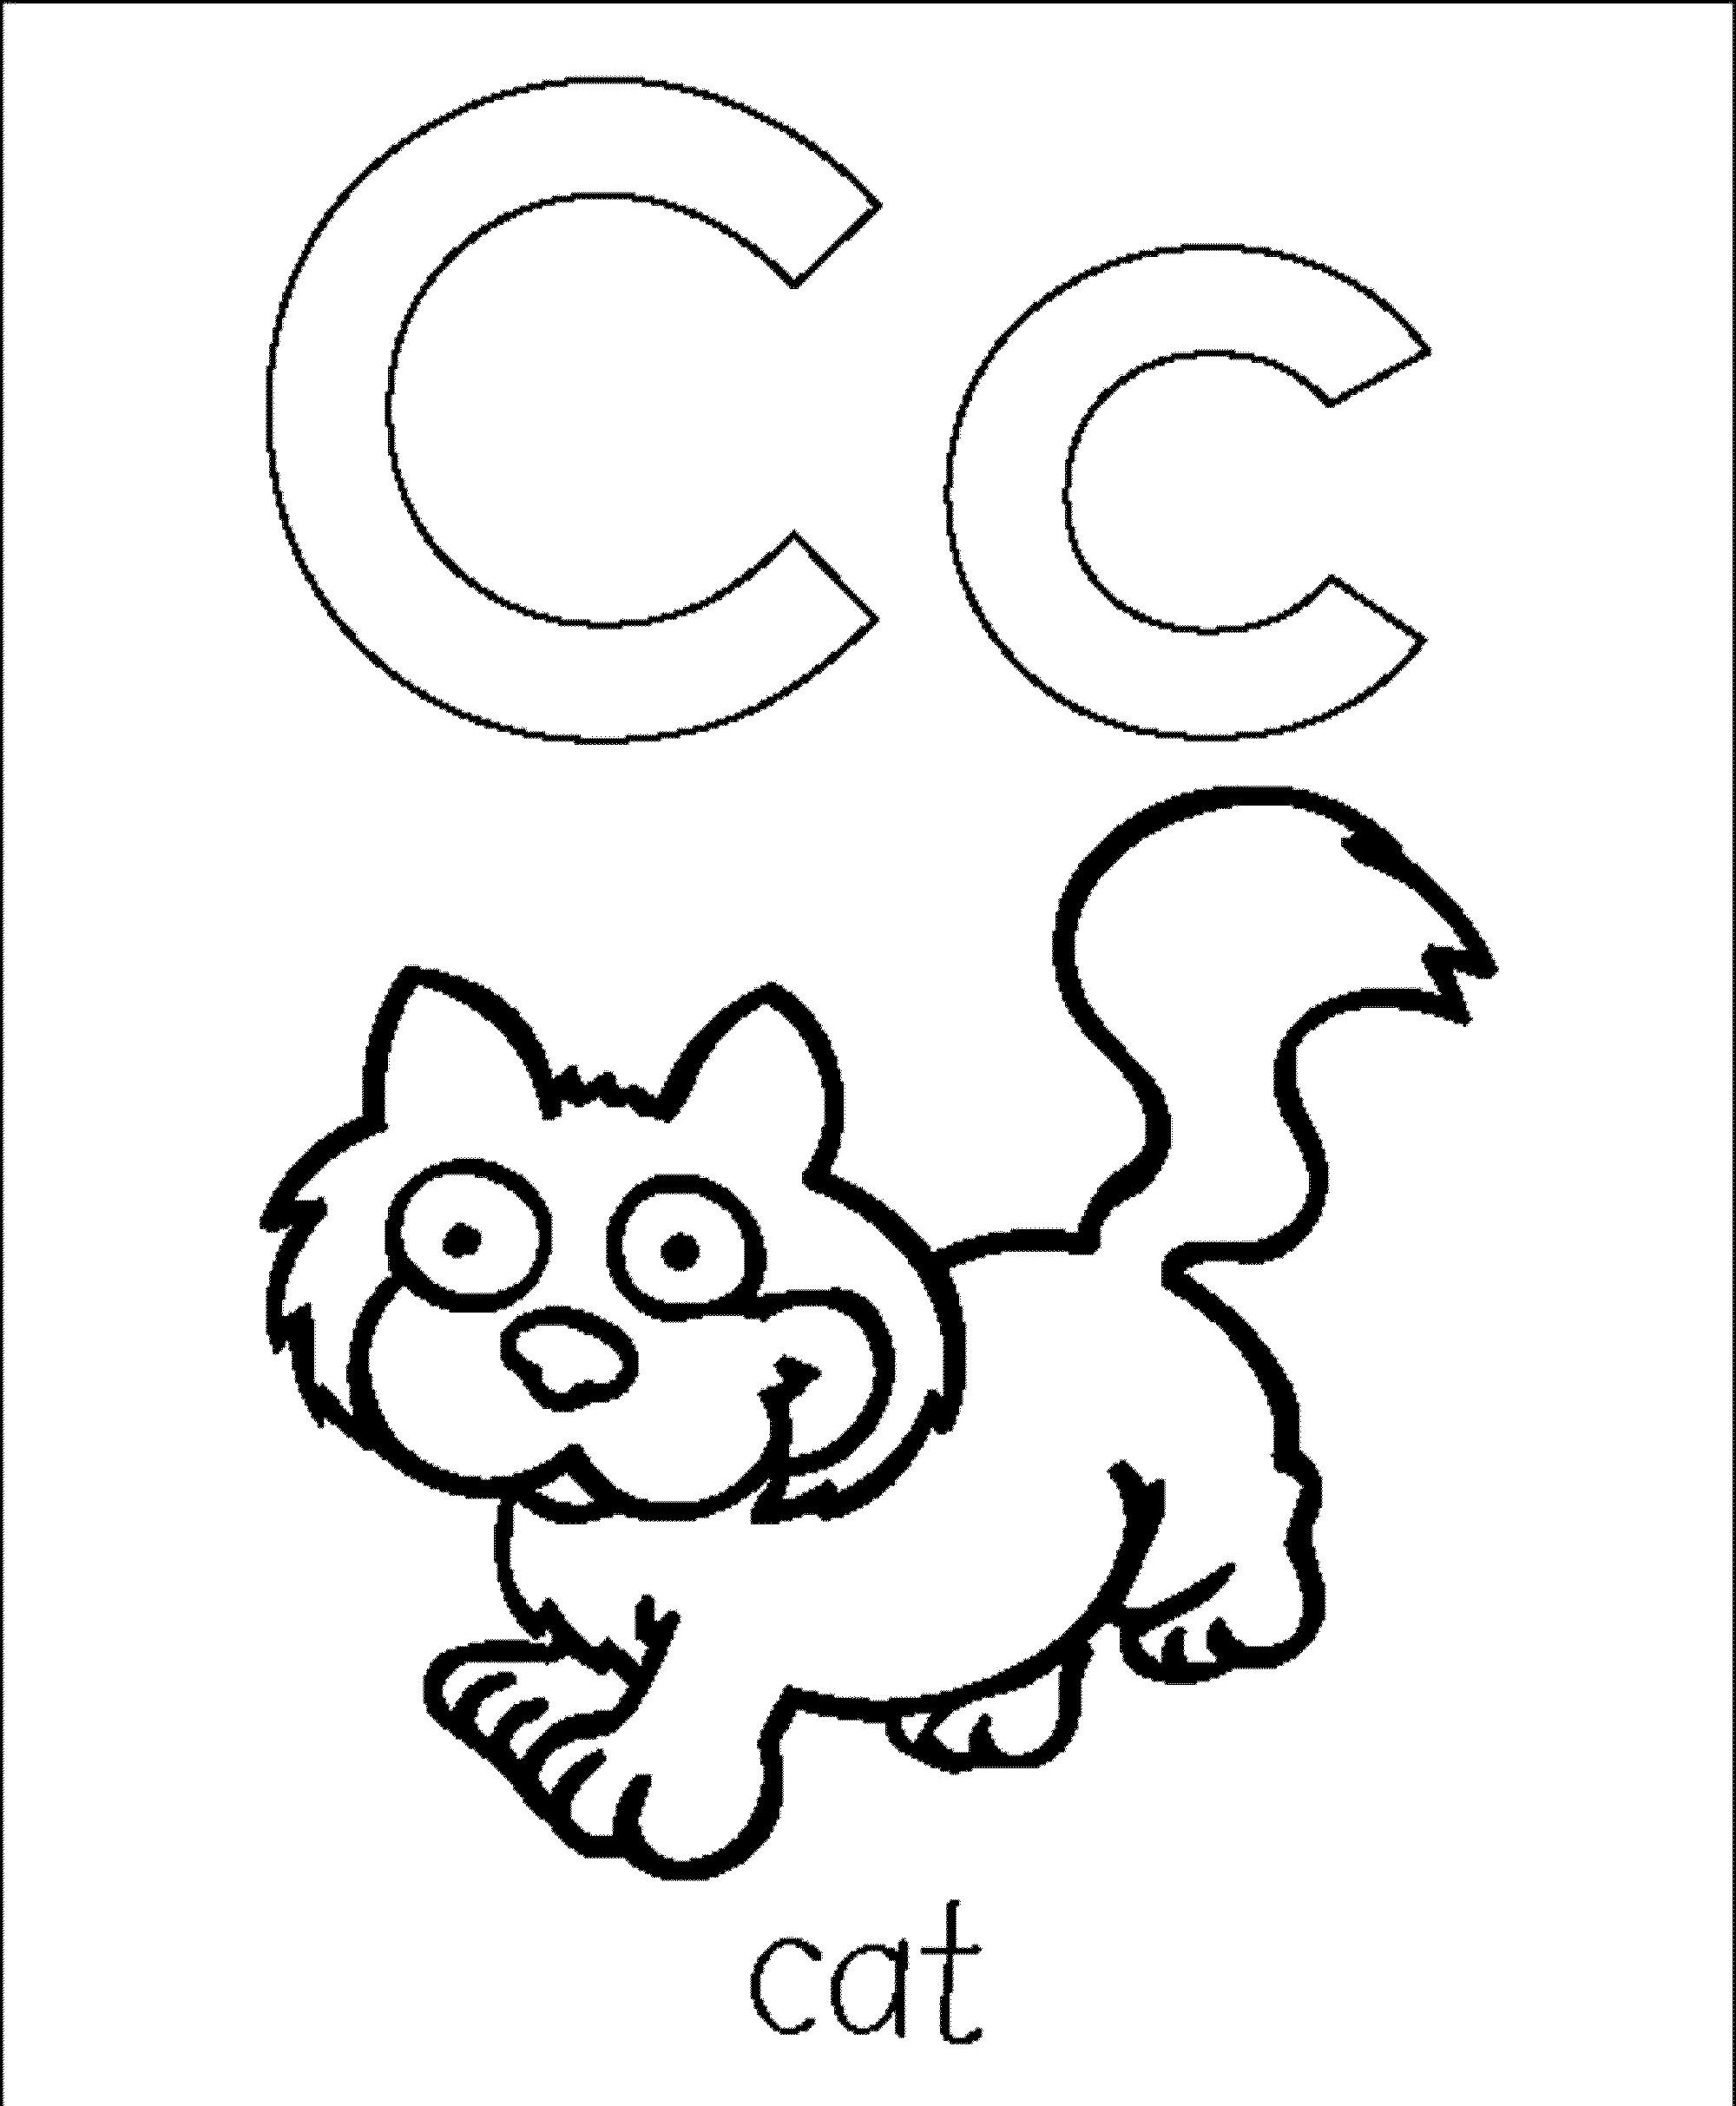 c coloring page letter c coloring pages to download and print for free page coloring c 1 1